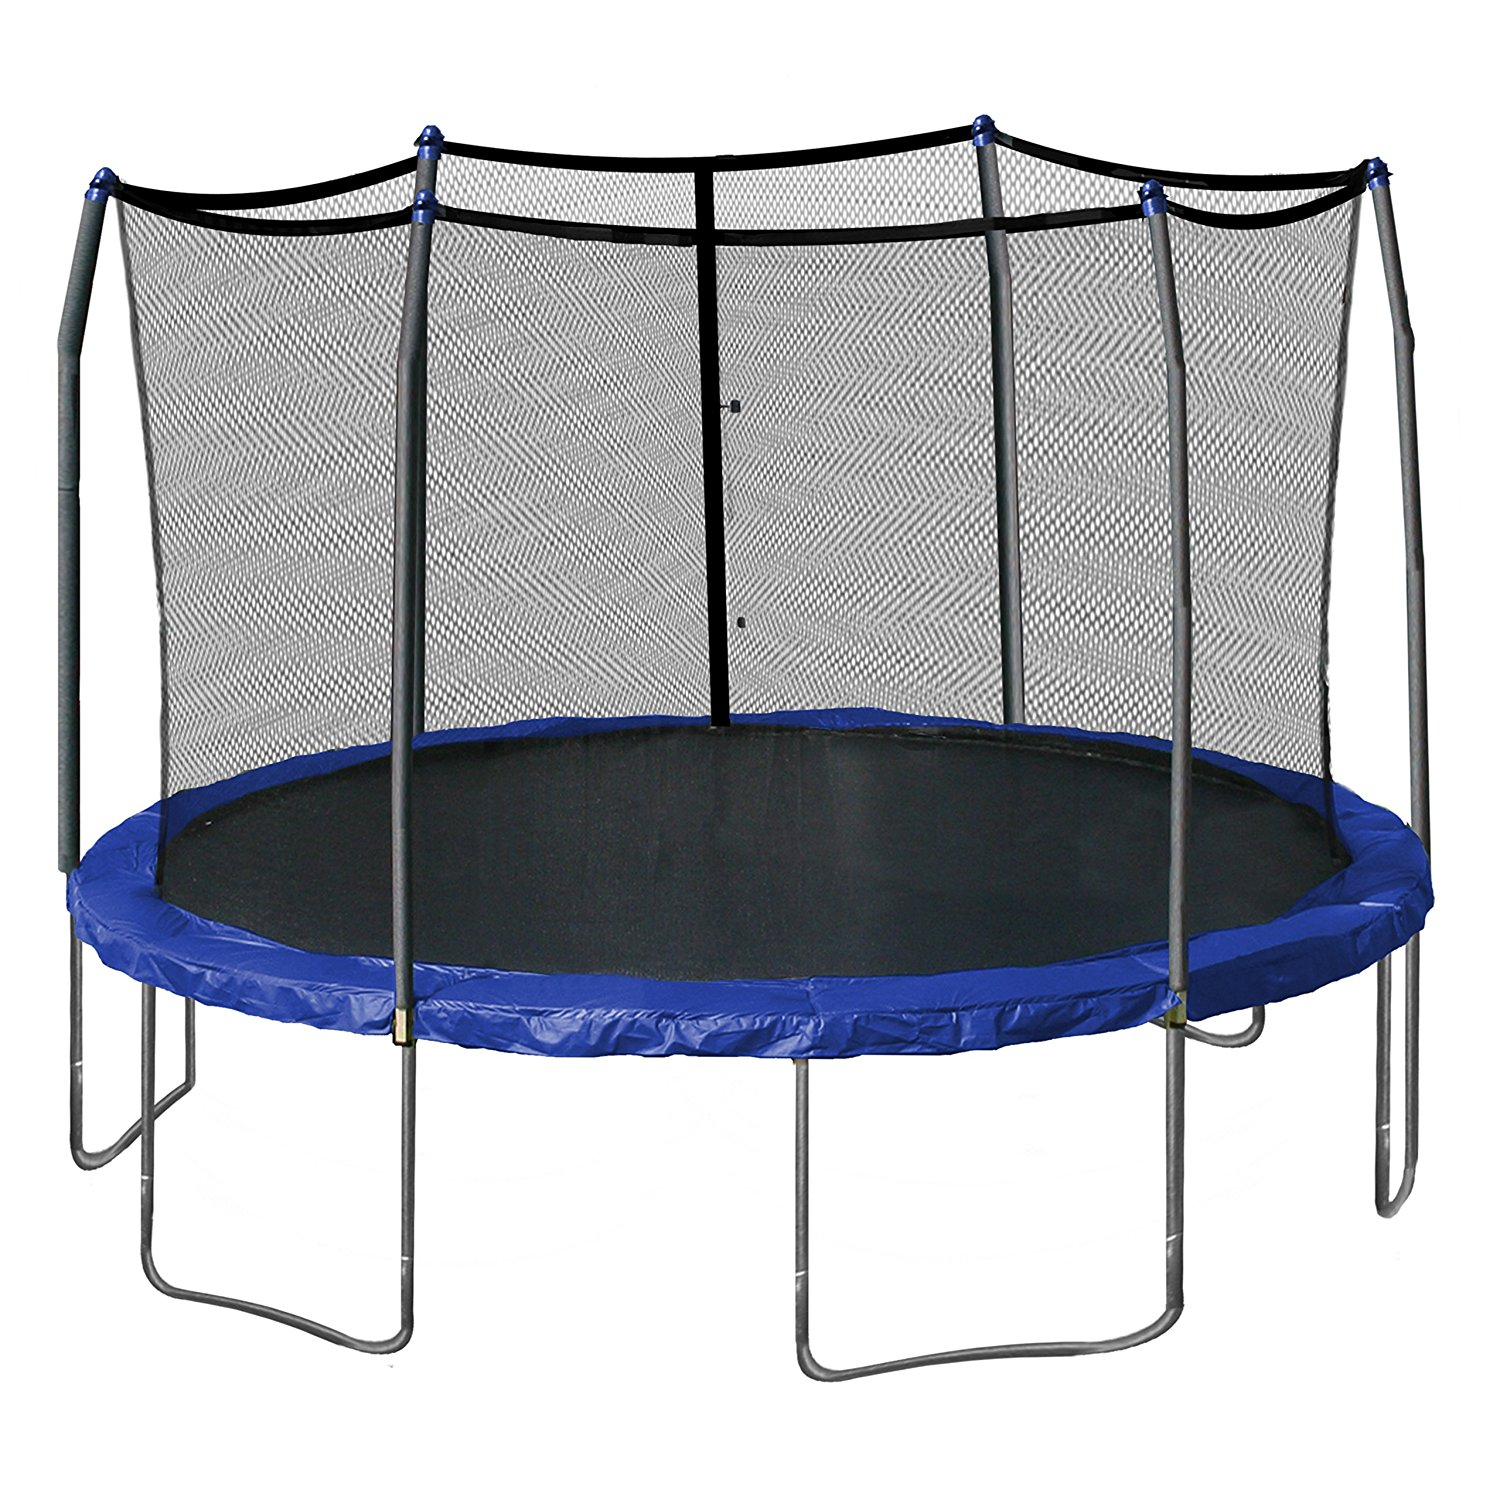 Skywalker Trampolines 15-Feet Round Trampoline and Enclosure with Spring Pad Review